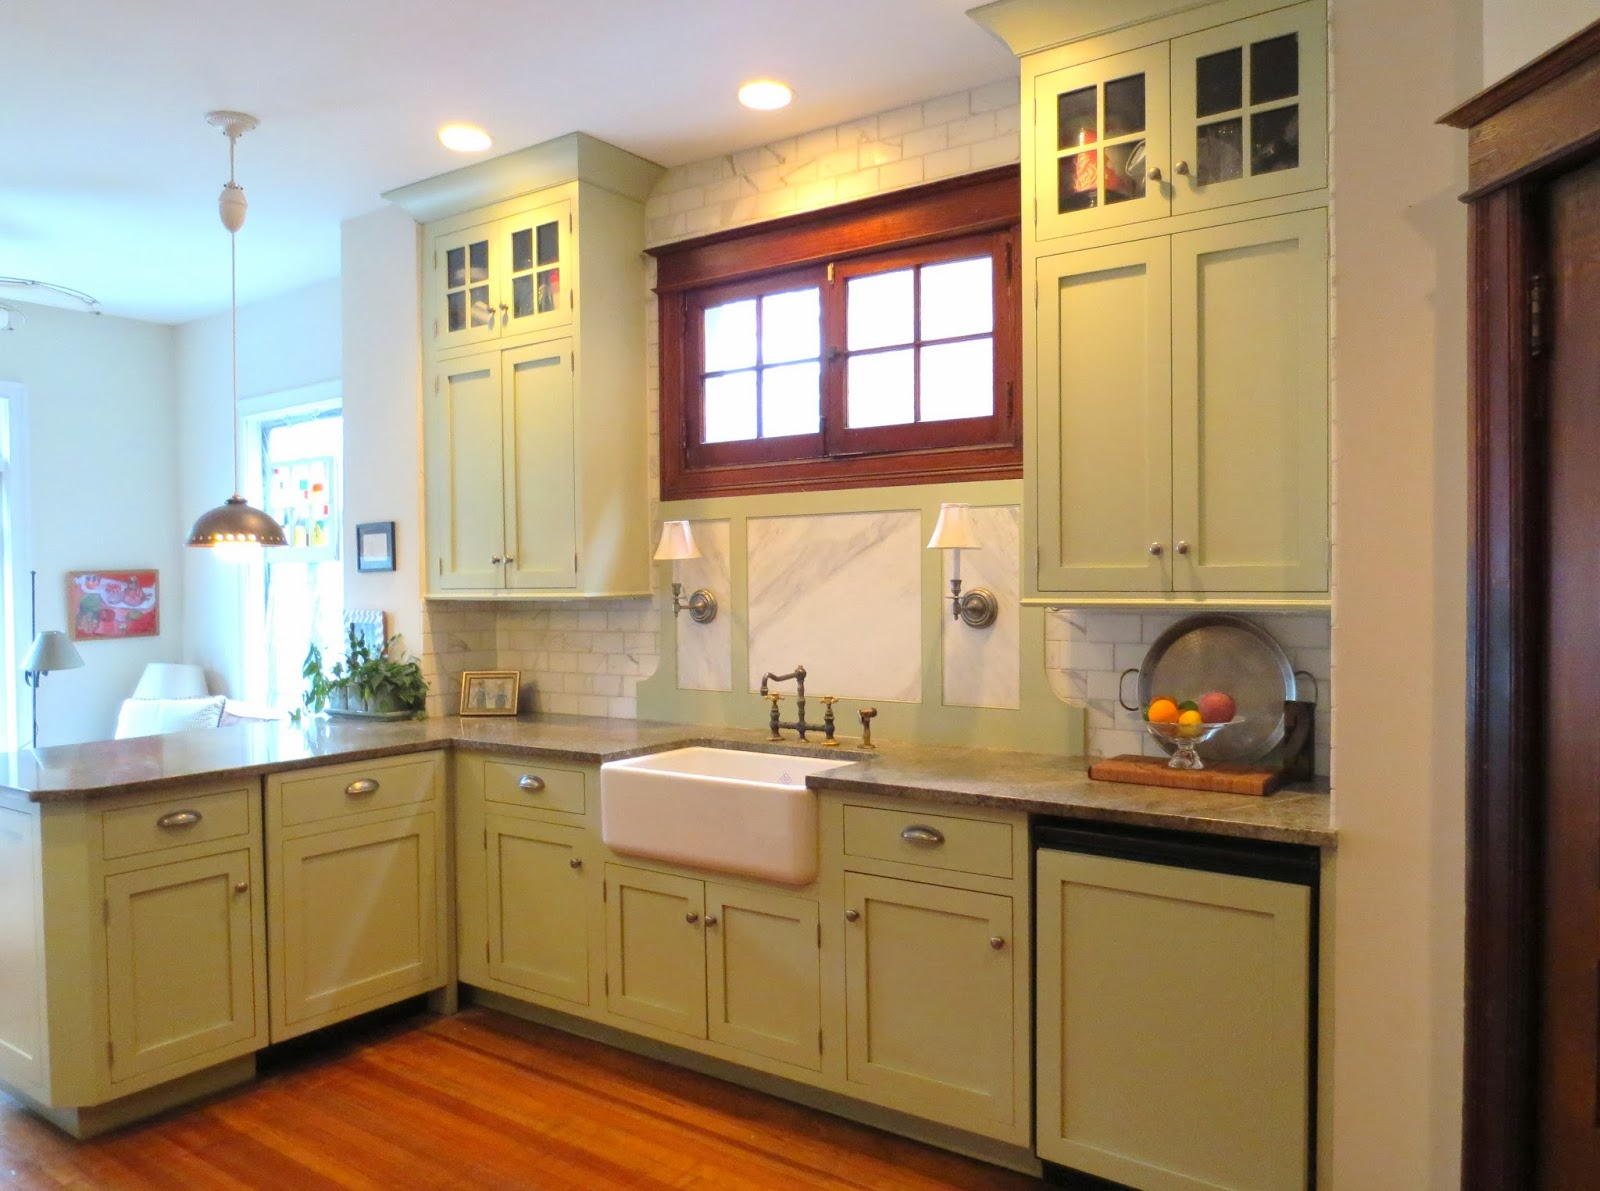 Beautiful Row House Refuge: Timeless Kitchen Design - Part 2 within Timeless Kitchen Design